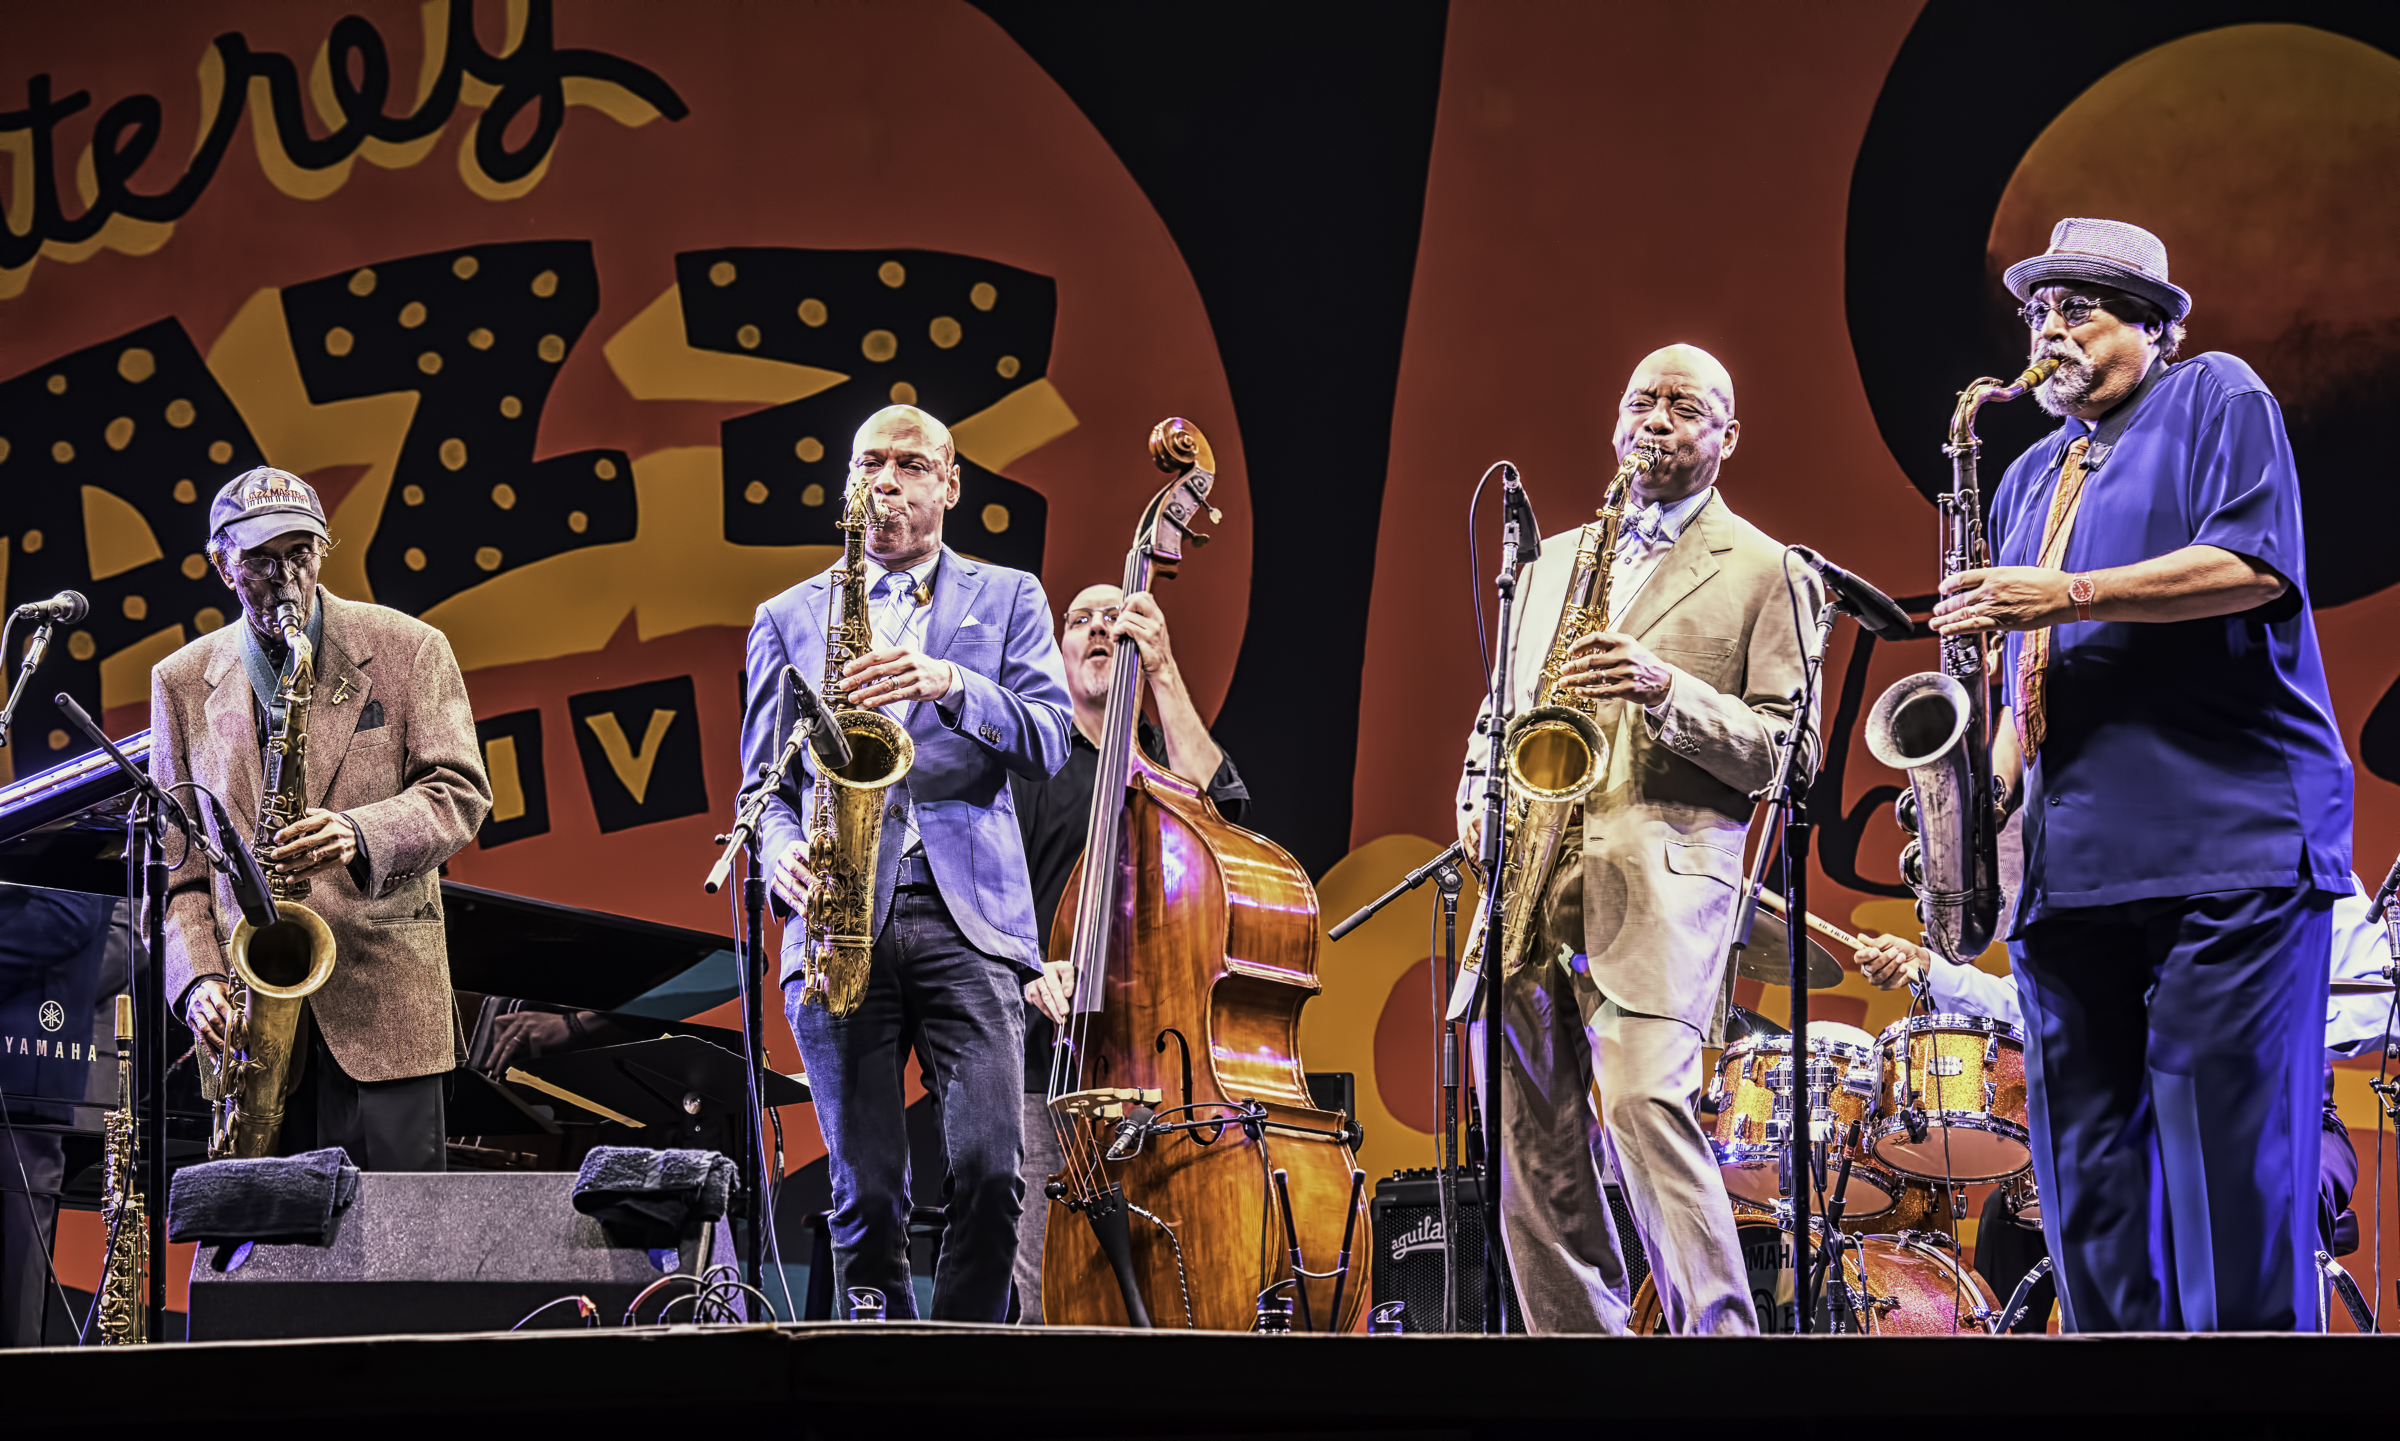 Jimmy Heath, Joshua Redman, Scott Colley and Joe Lovano with A Tribute to Sonny Rollins at the Monterey Jazz Festival